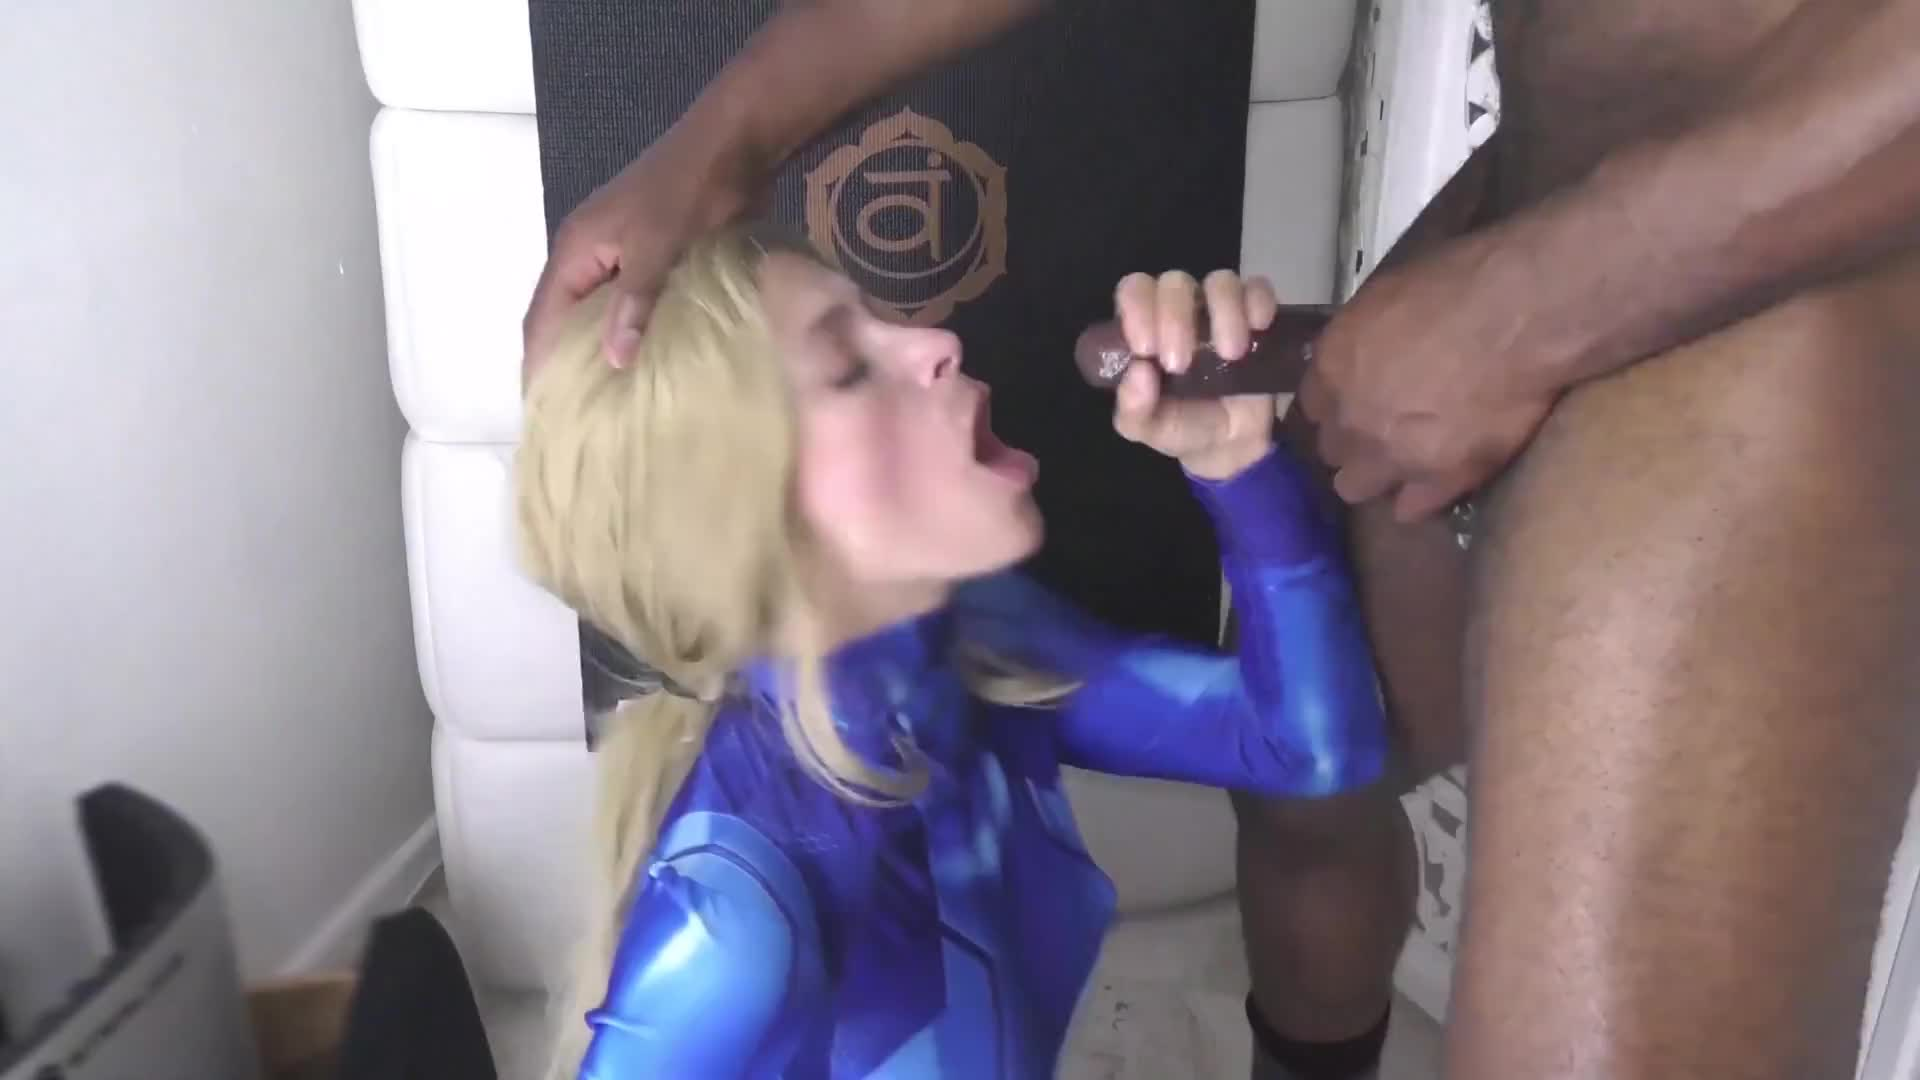 Pretty blonde gets a big jizz load on her face from black friend